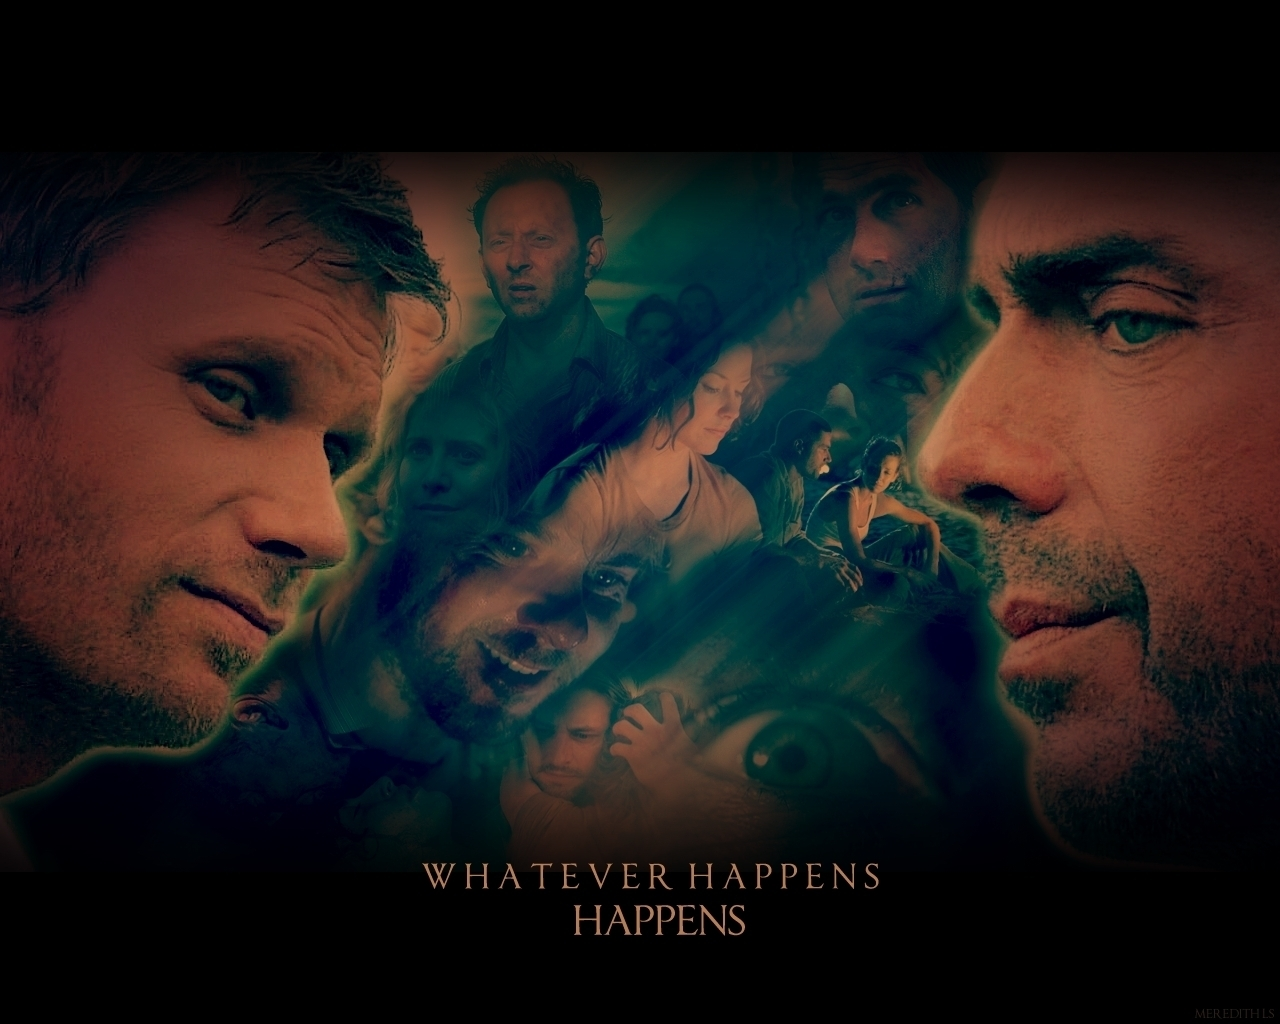 Whatever happens happens